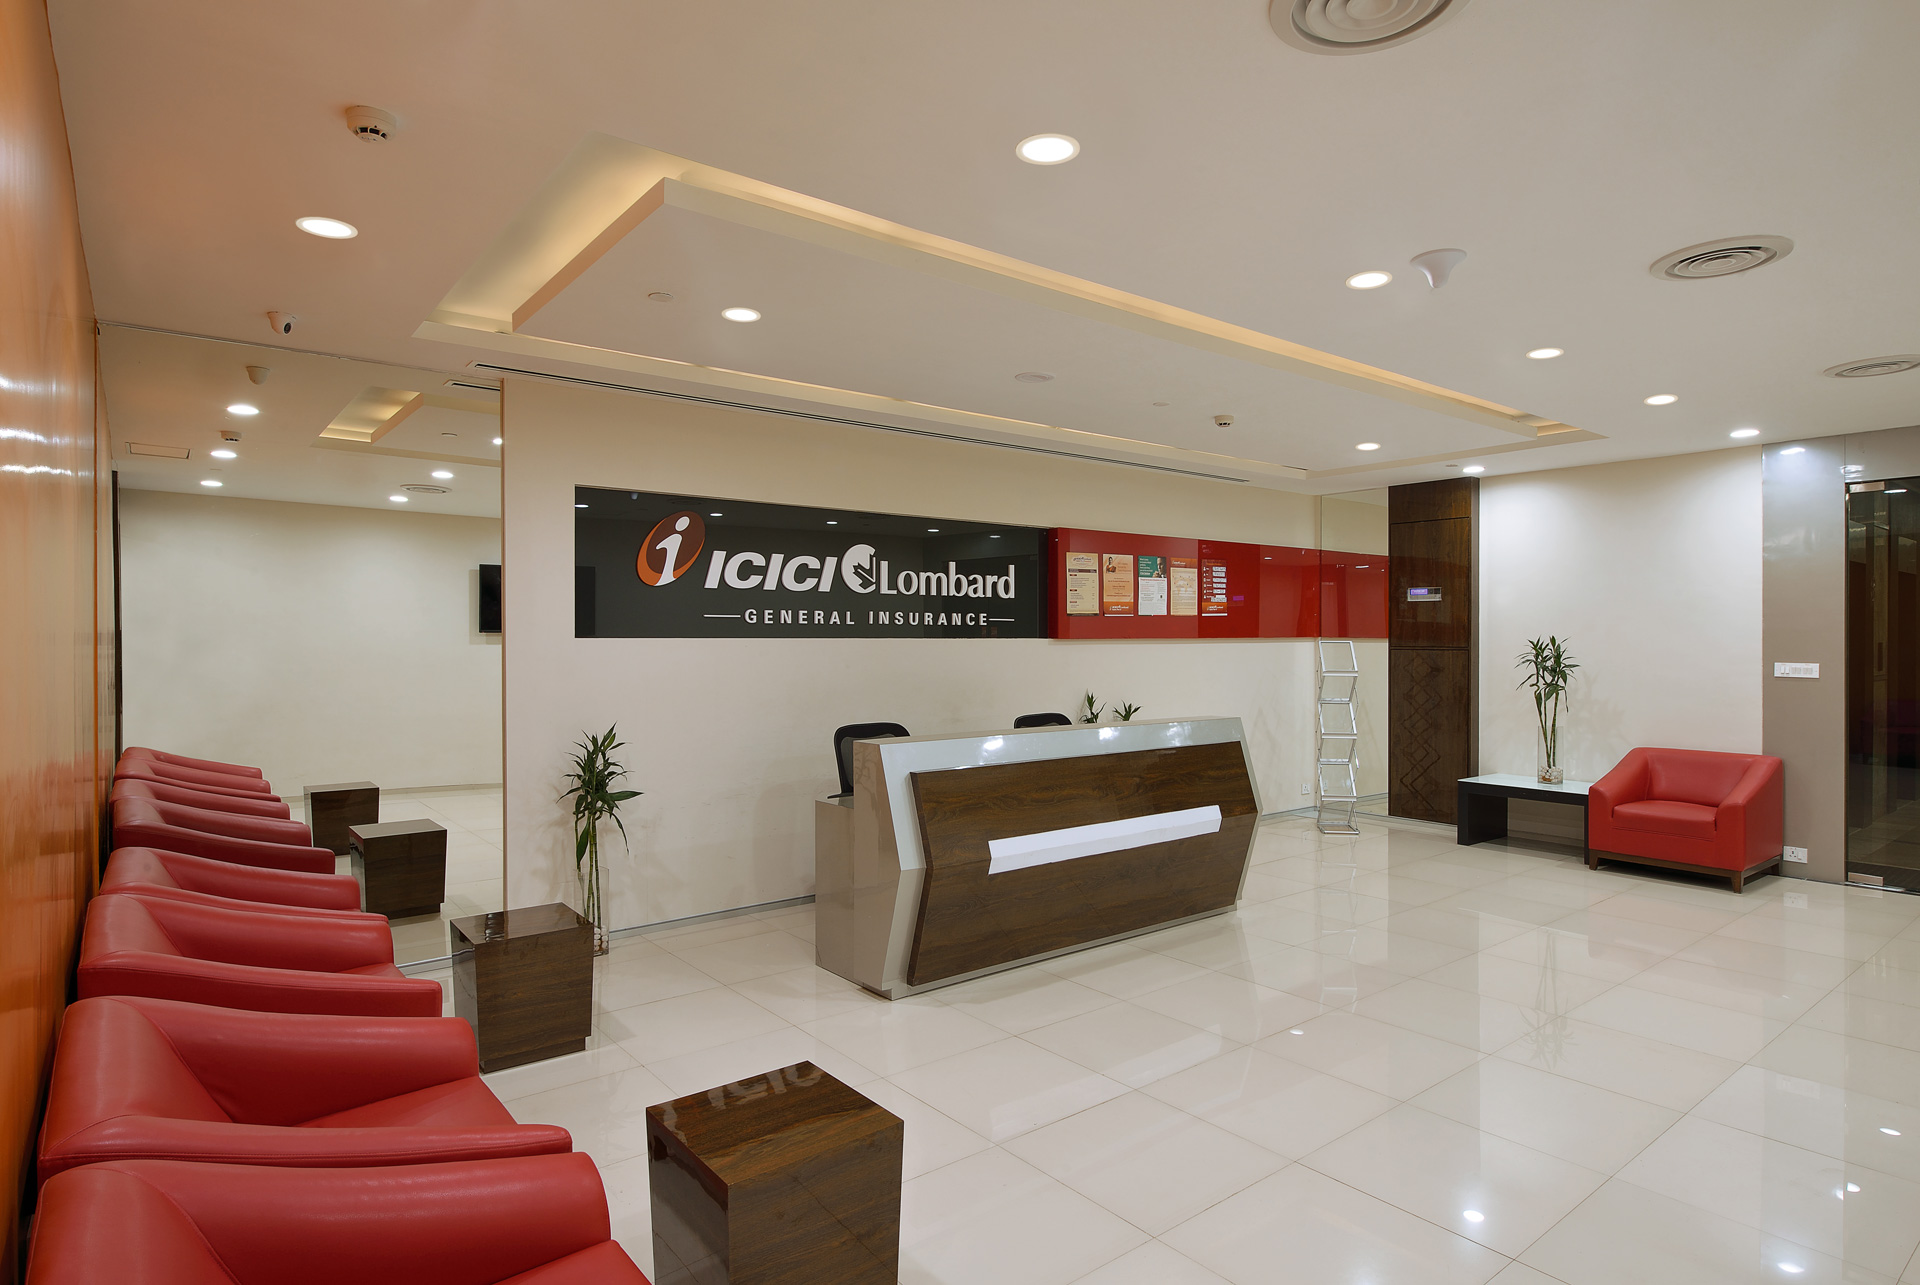 How ICICI Lombard is Using Technology For Better Customer Experience